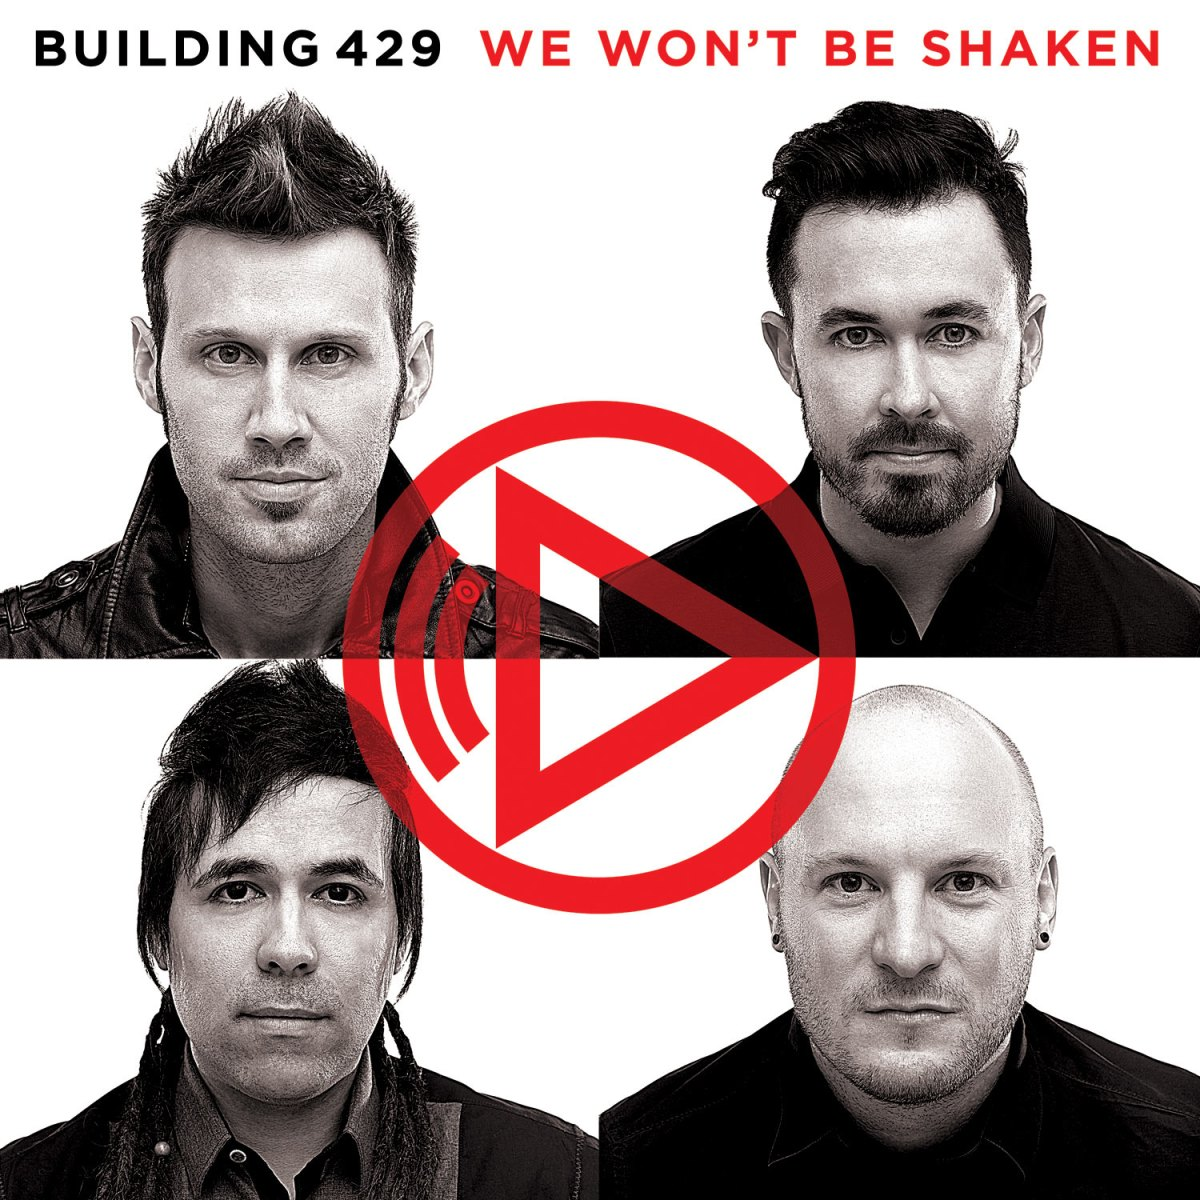 Artist of the Week: Building 429